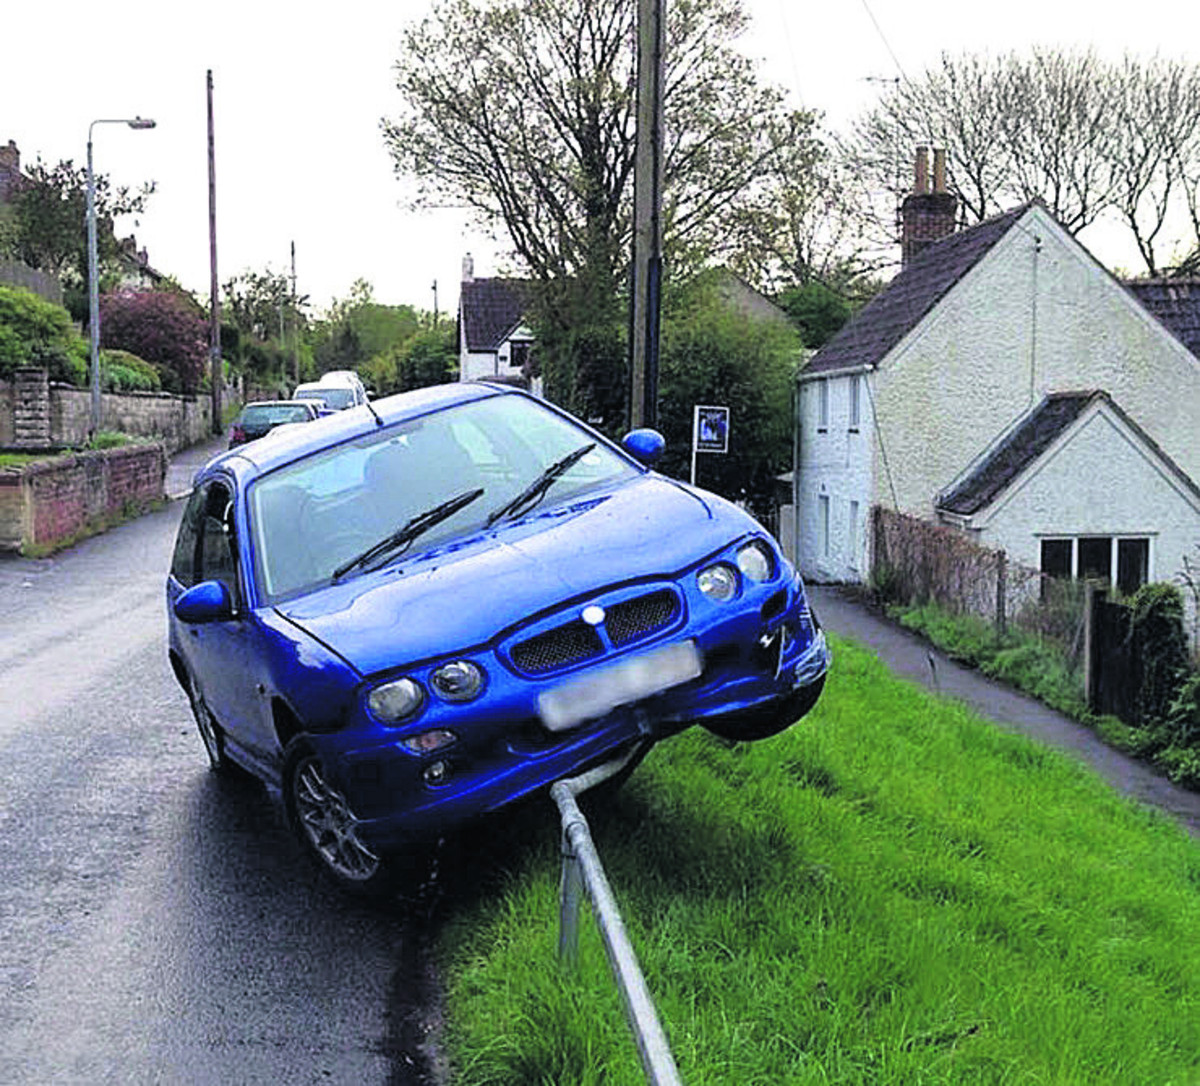 Police are still appealing for witnesses to this crash involving a MG ZR Rover in Anchor Road, Calne